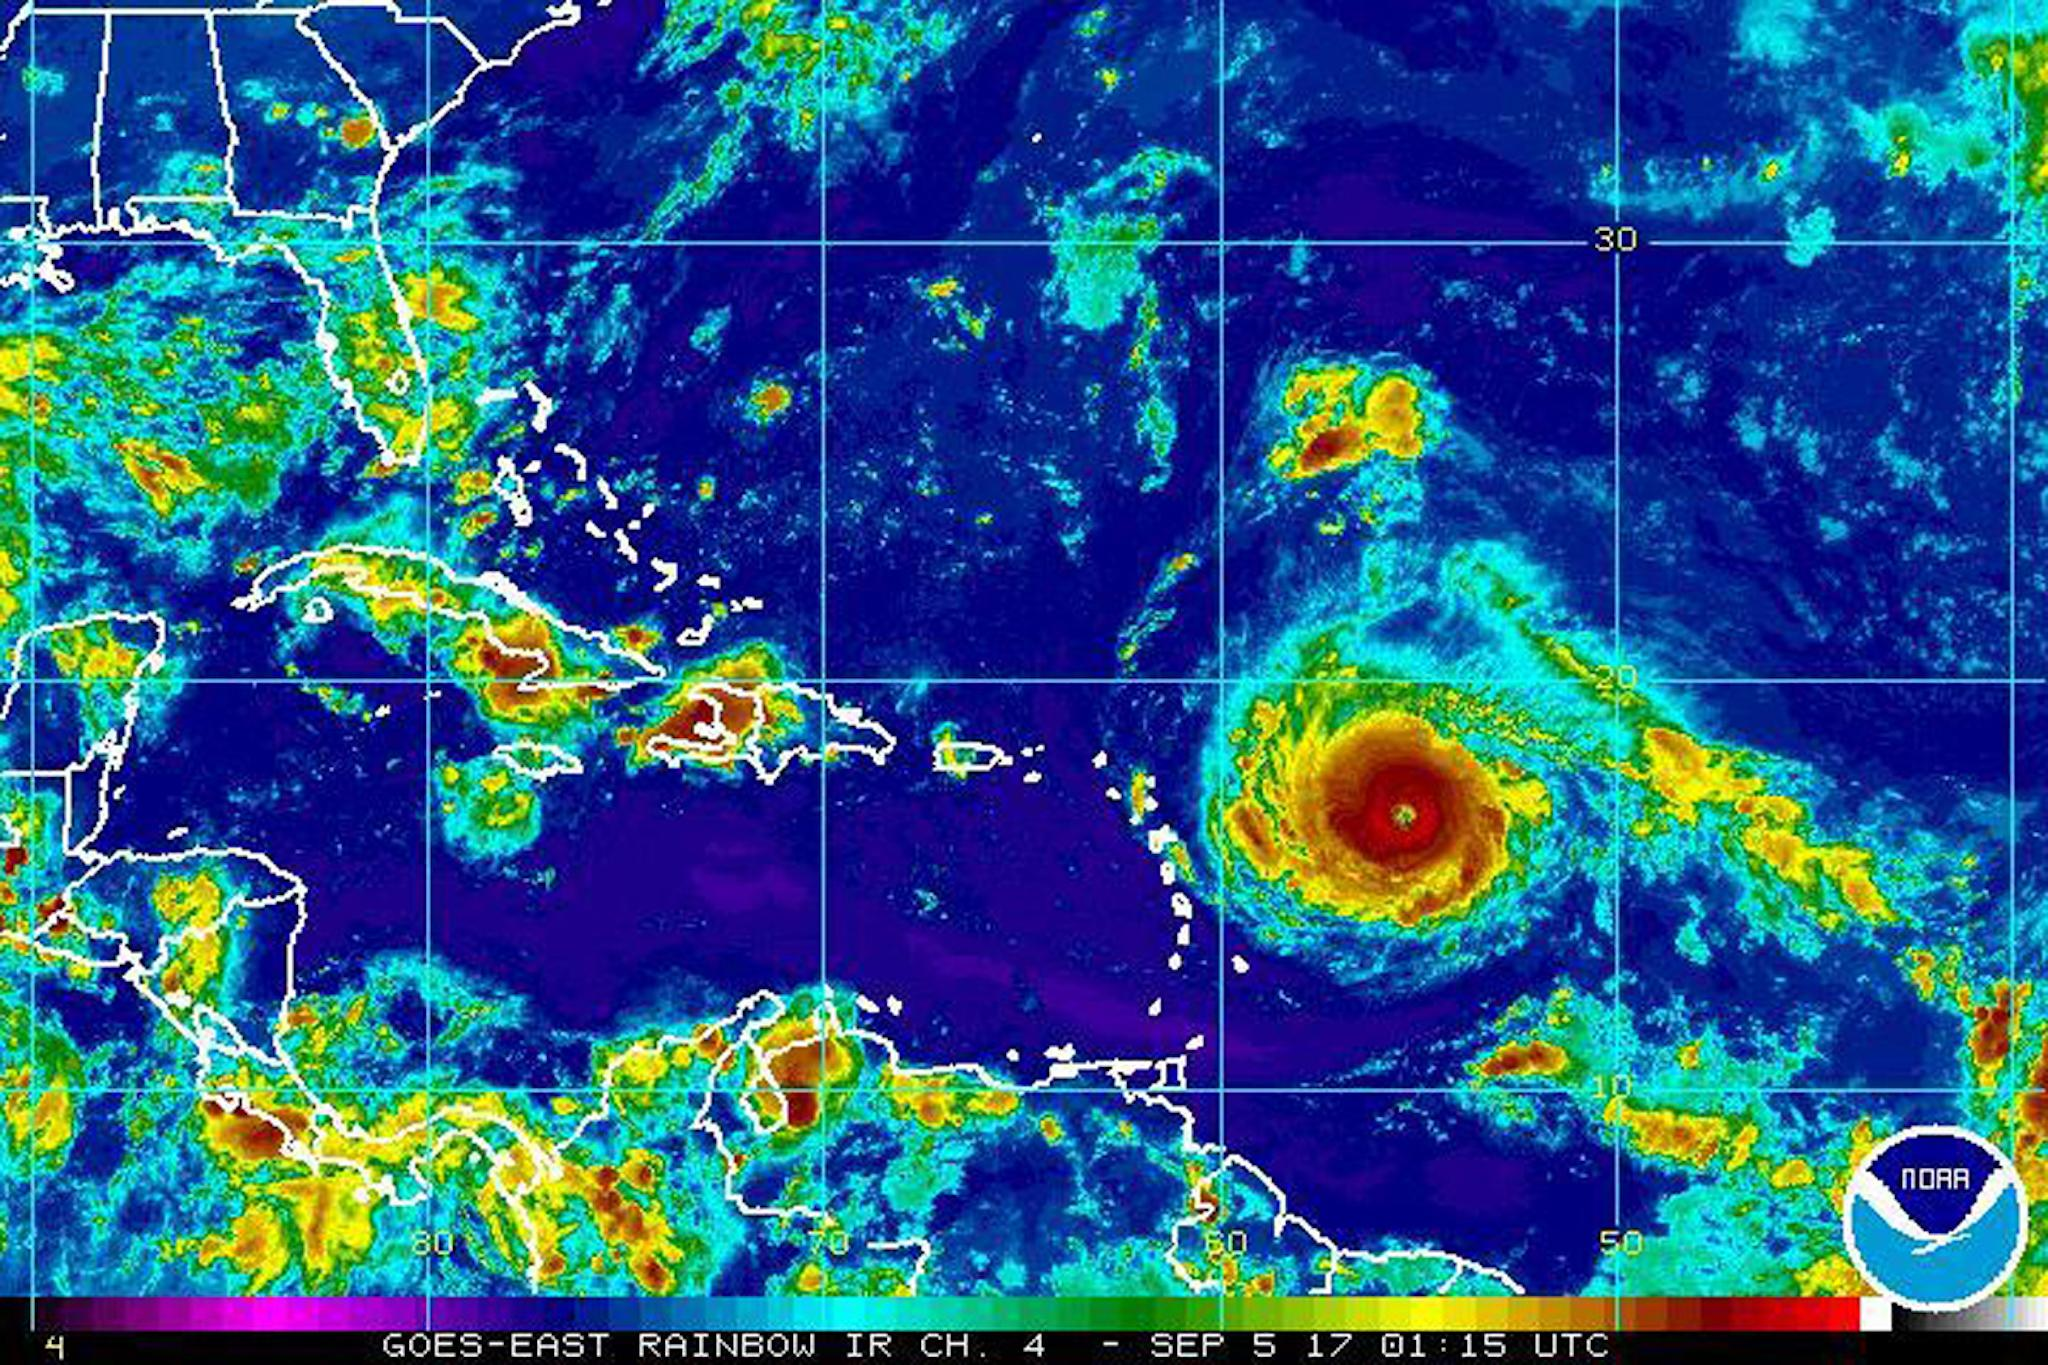 Hurricane Irma has become so strong it's showing up on seismometers used to measure earthquakes